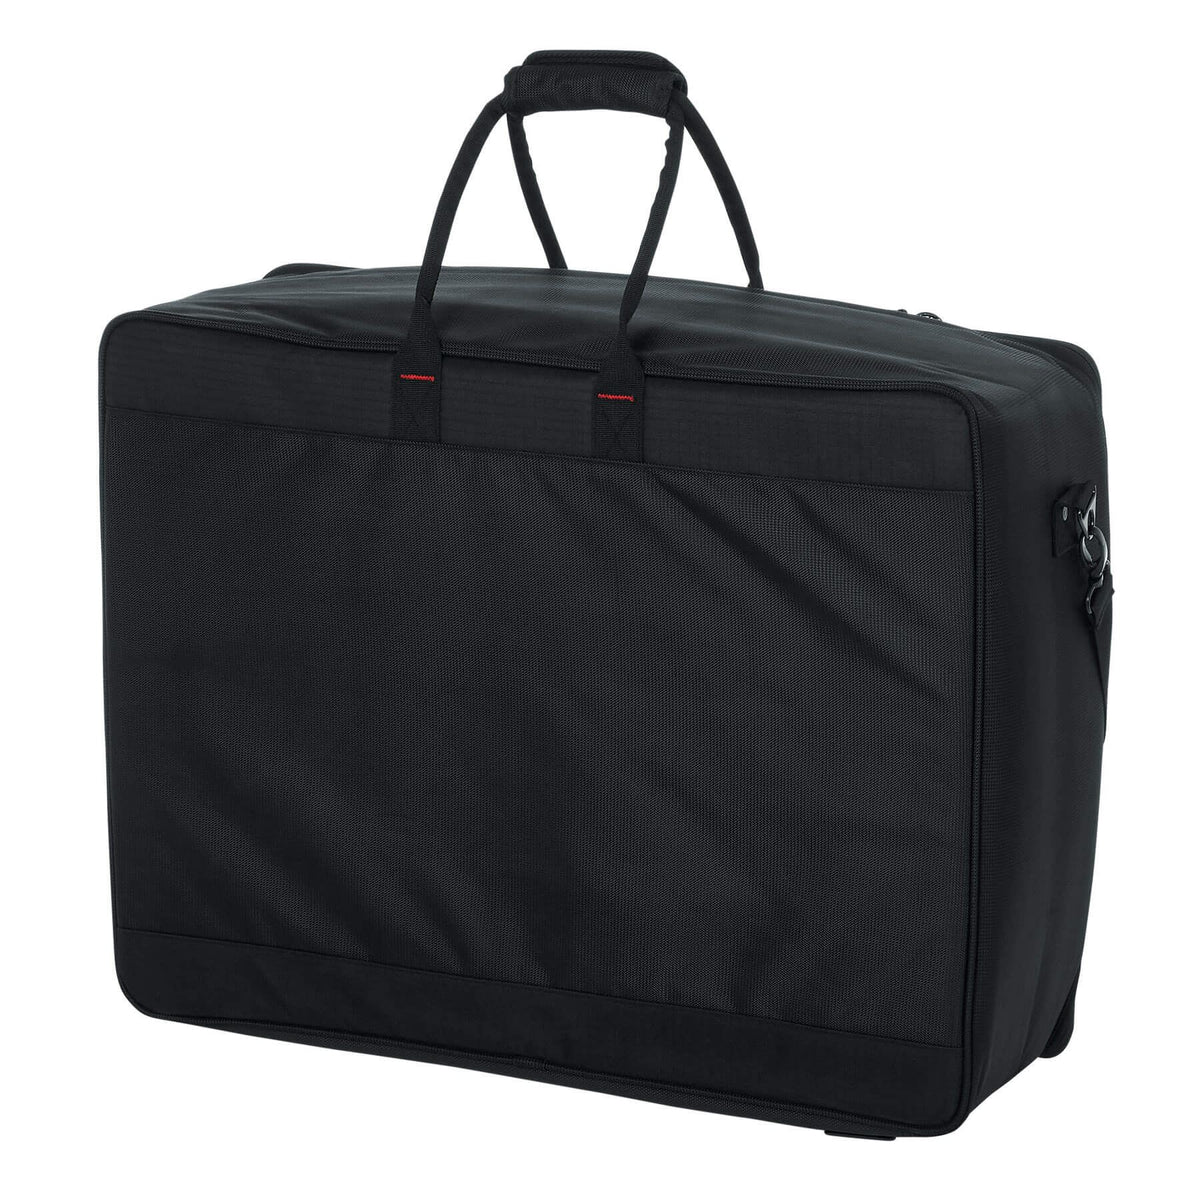 "Gator Cases G-MIXERBAG-2519 25"" x 19"" x 8"" Mixer Bag"